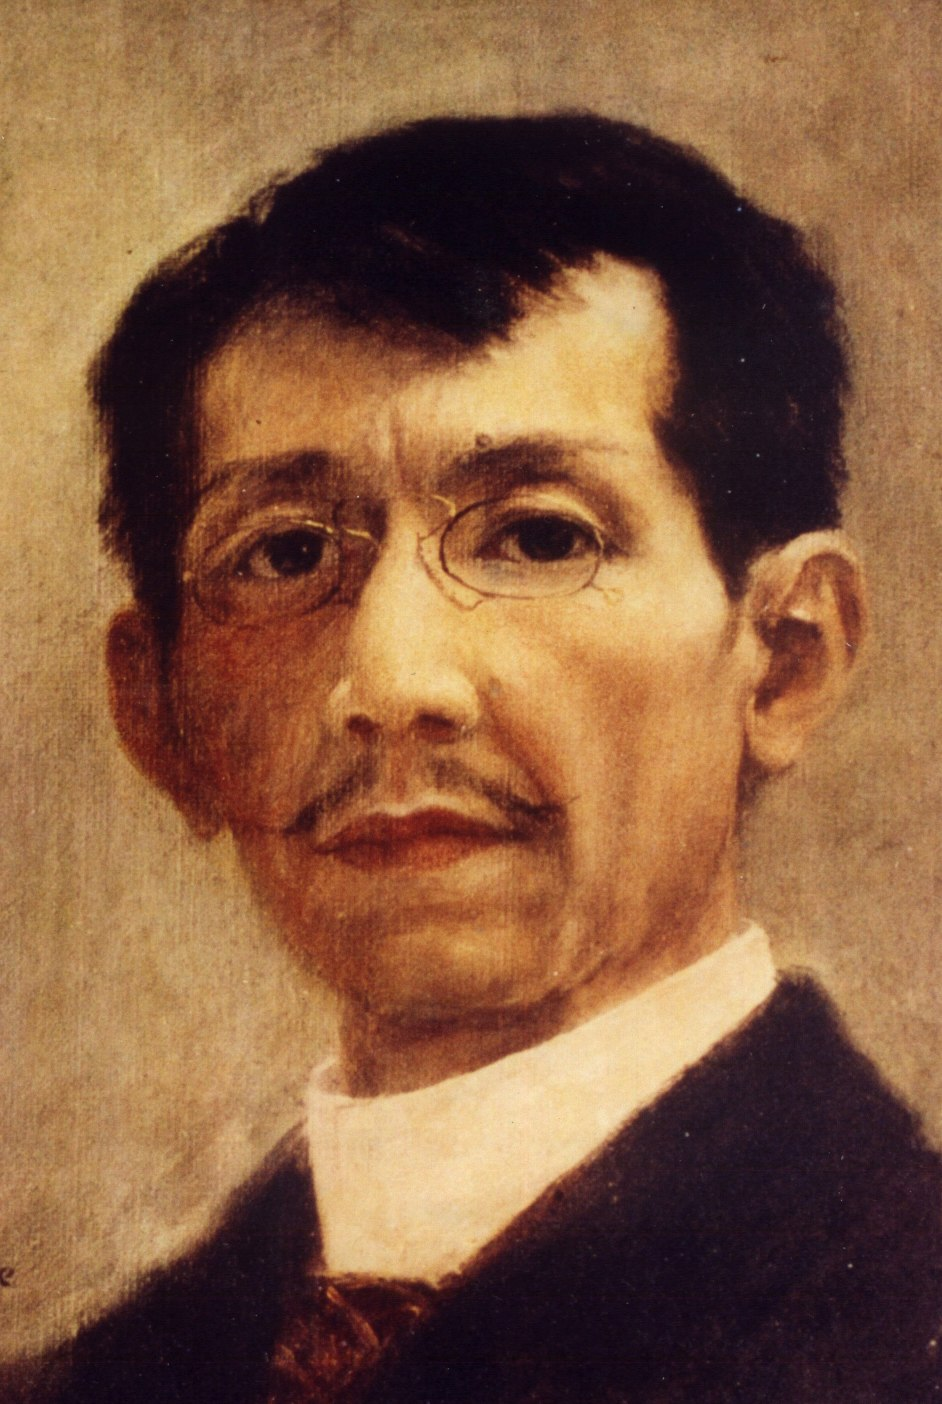 Self portrait by Félix Resurrección Hidalgo